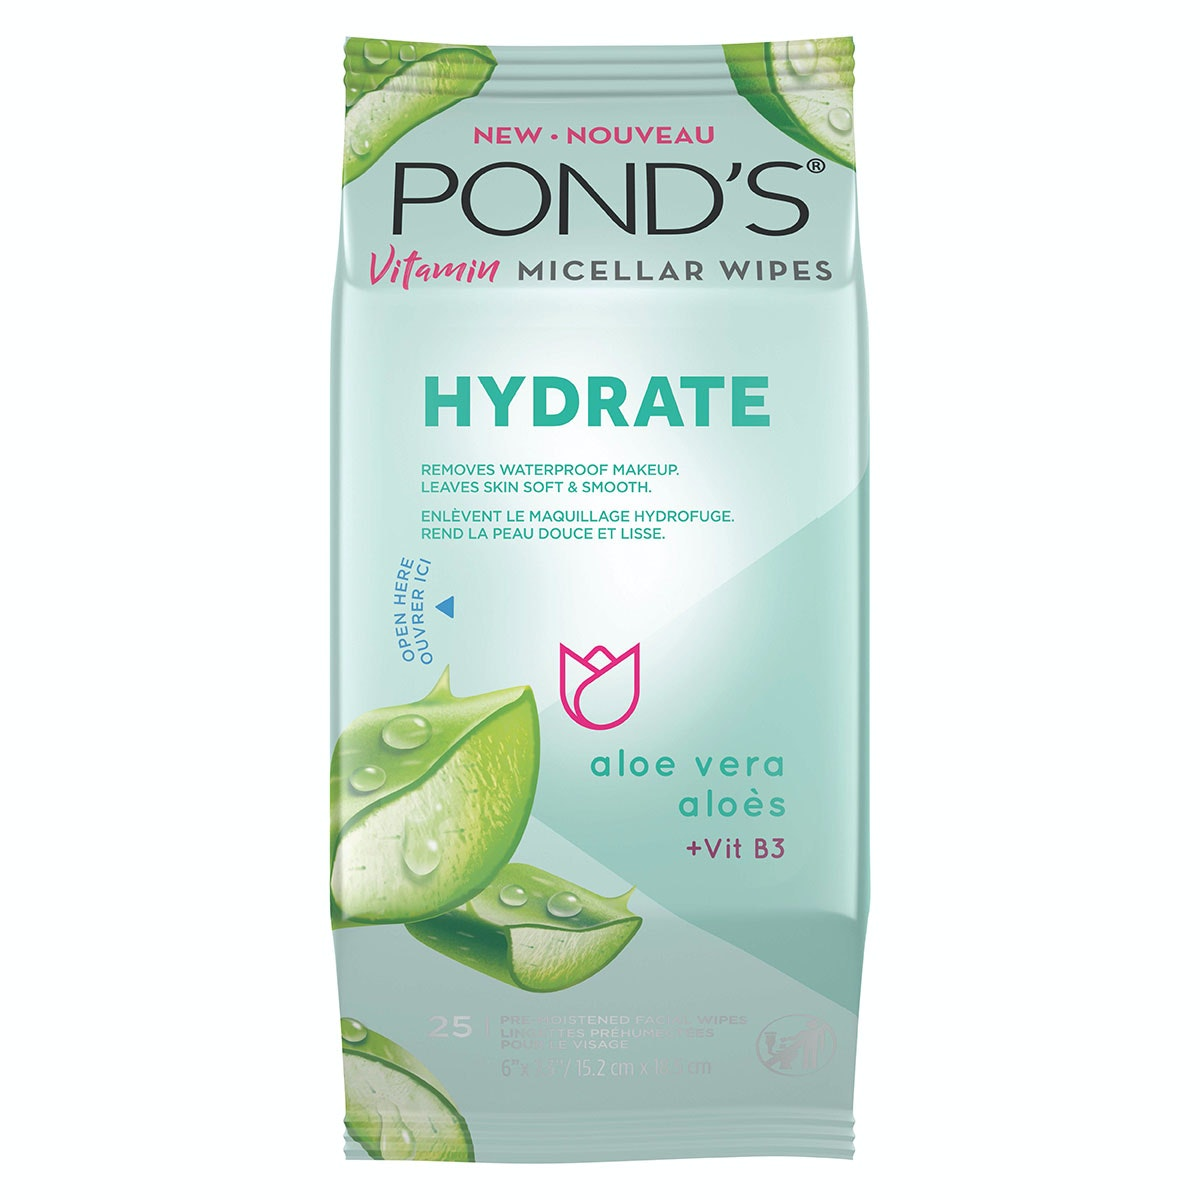 Pond's® Vitamin Micellar Wipes Hydrate